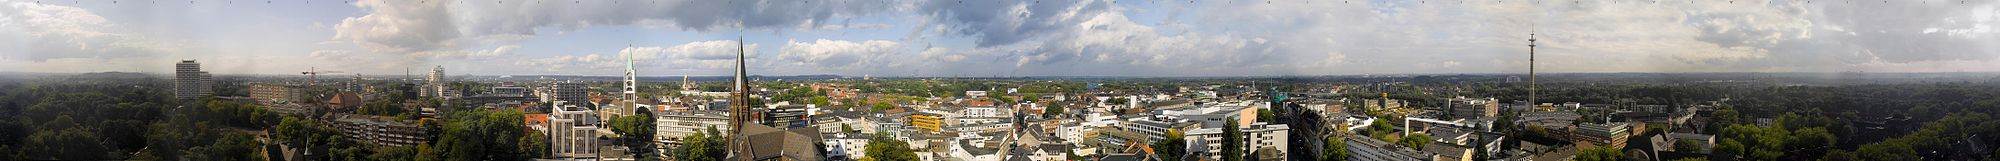 Panorama of Gelsenkirchen